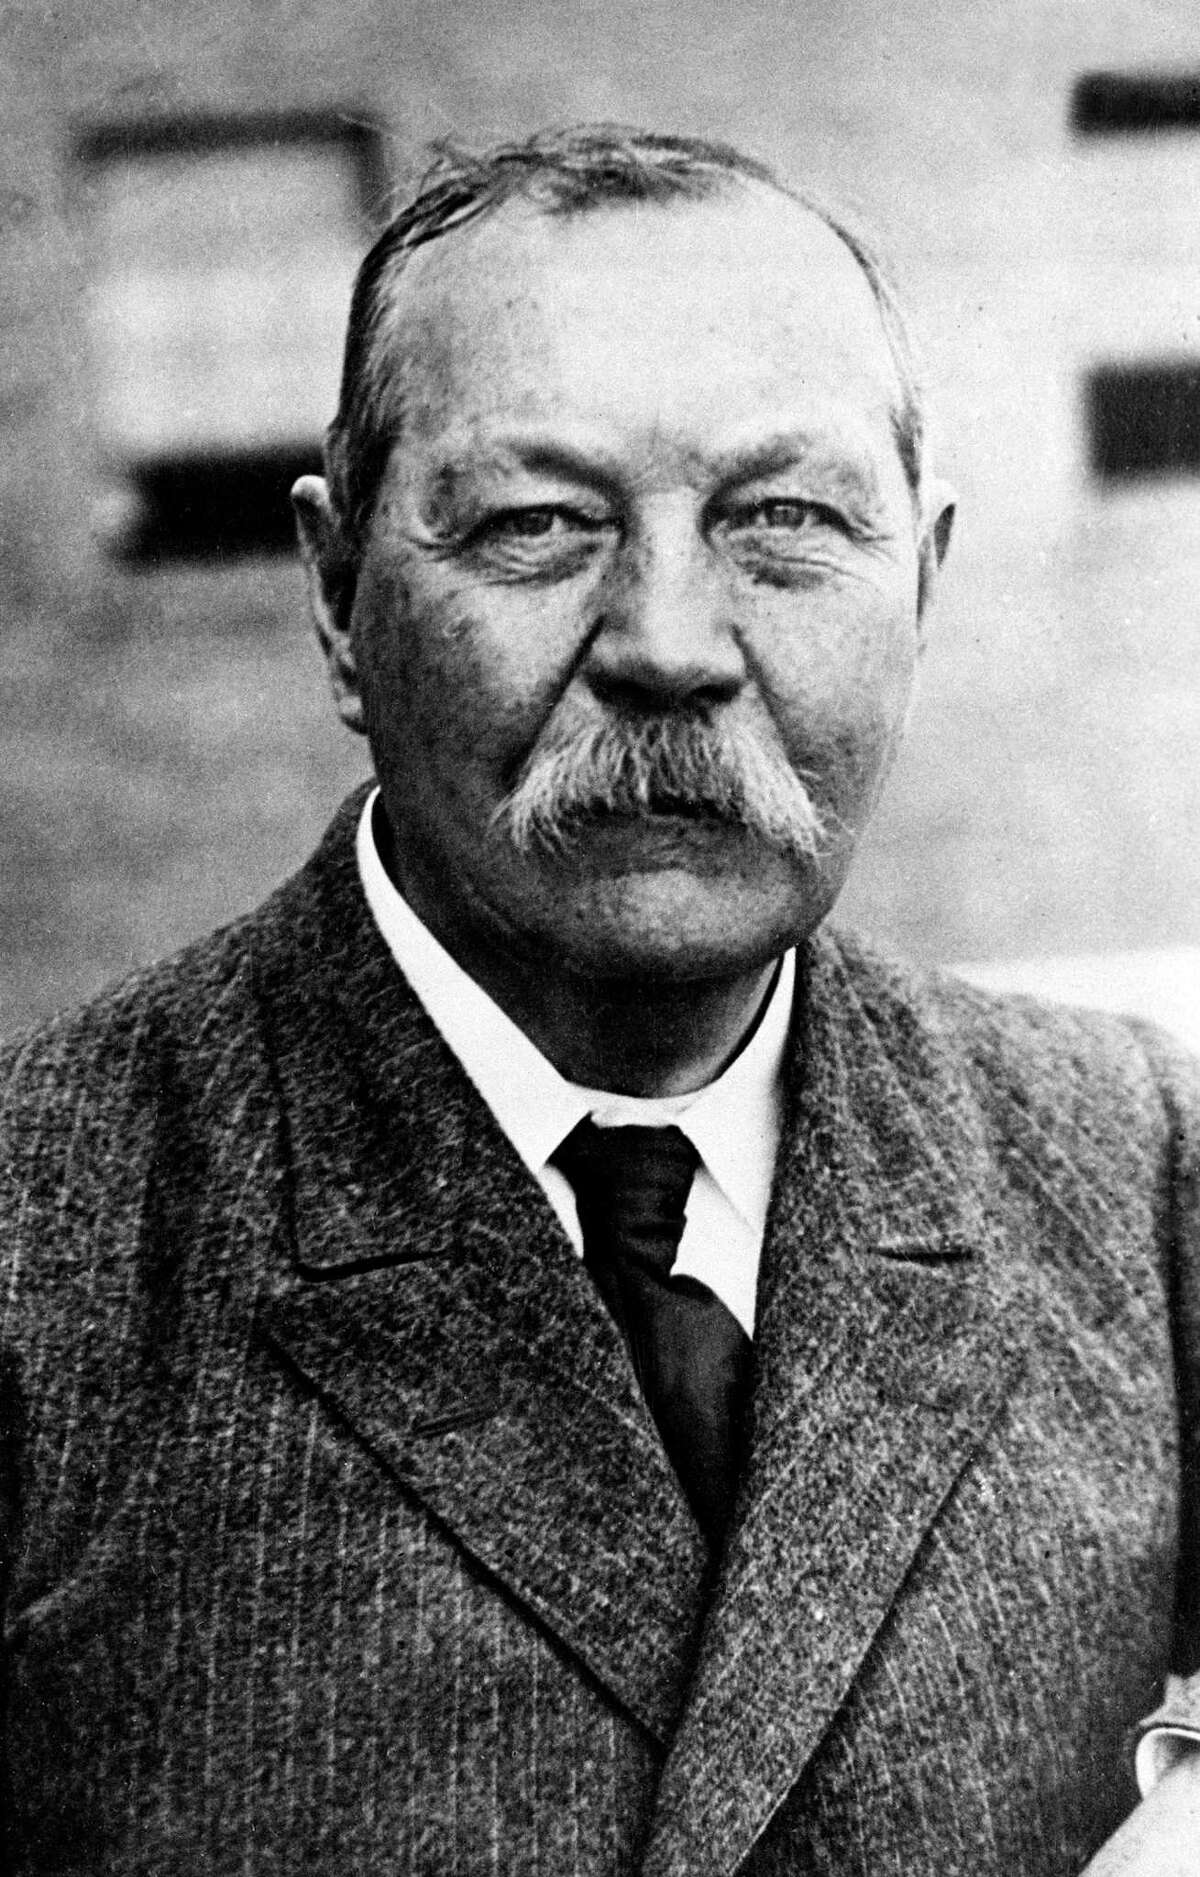 Sir Arthur Conan Doyle, author and creator of Sherlock Holmes, is shown in 1930.